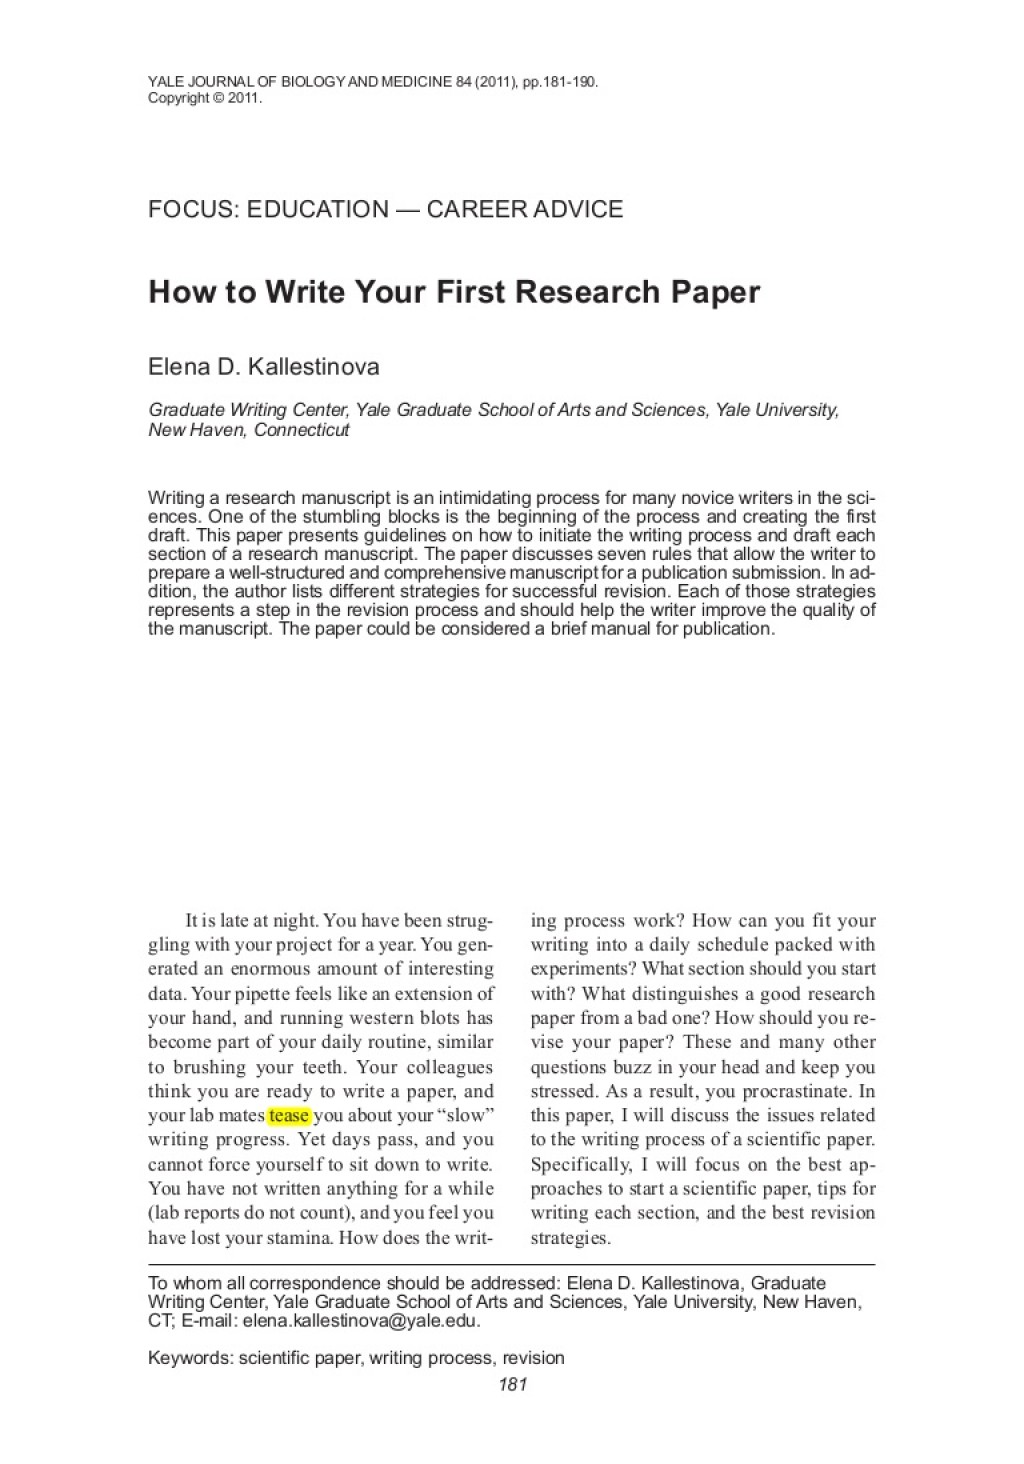 013 How To Write Research Papers Paper Howtowriteyourfirstresearchpaper Lva1 App6891 Thumbnail Best A History Introduction For International Conference In Computer Science Ppt Large